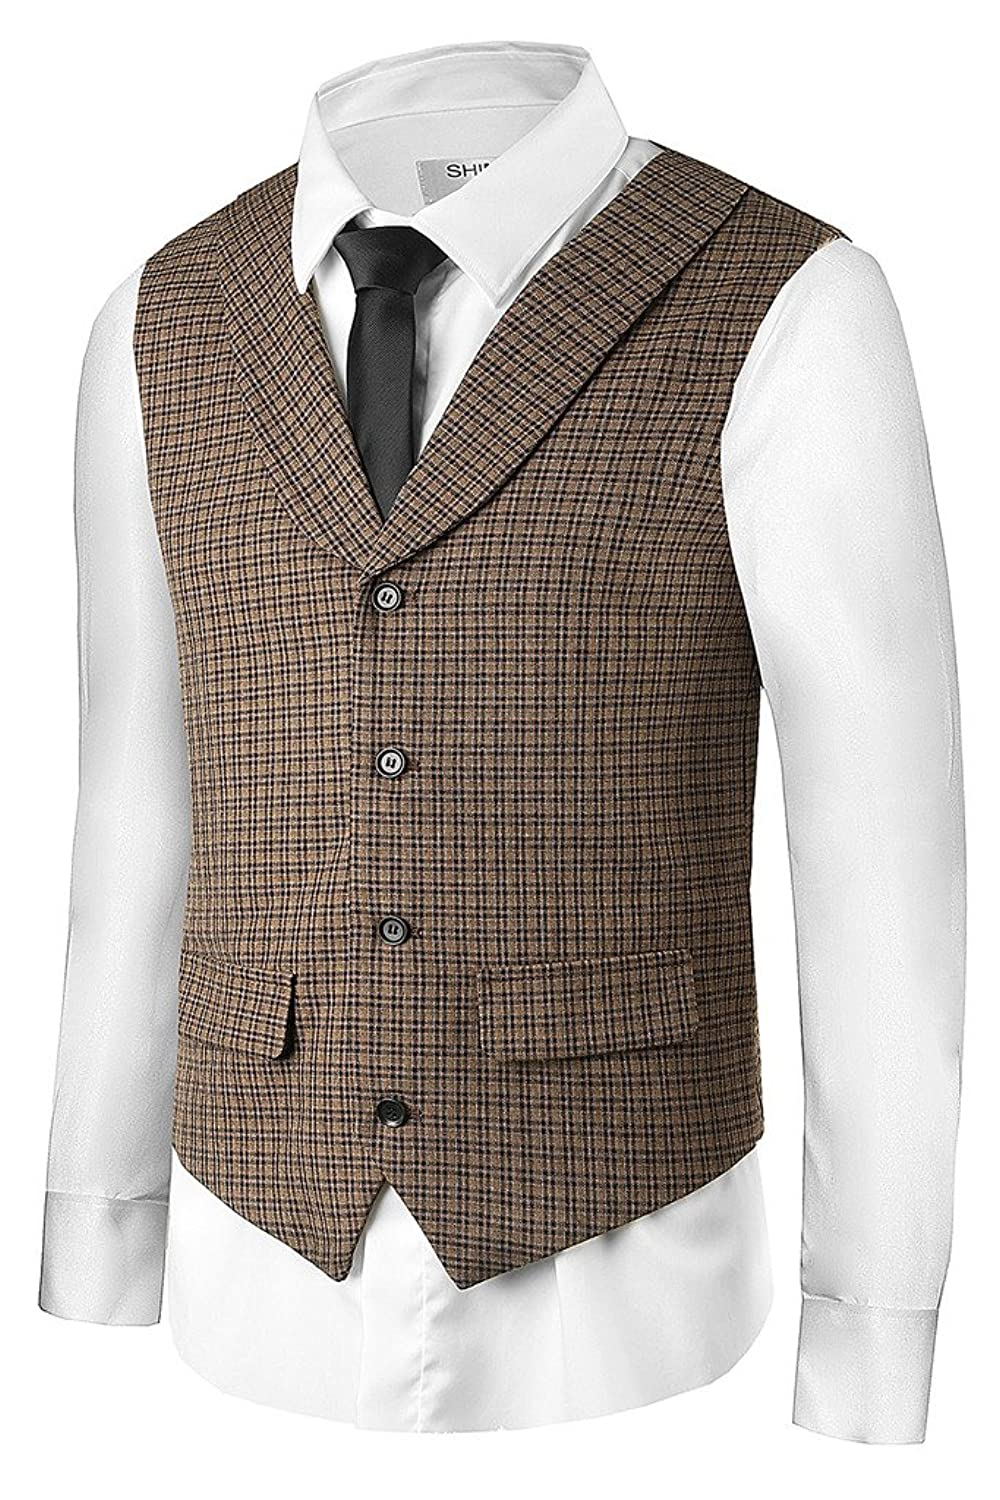 1900s Edwardian Men's Suits and Coats Hanayome Men Plaid Vest Suit Jacket Waistcoat Brown Business Shawl Collar Vests VS28 $28.50 AT vintagedancer.com